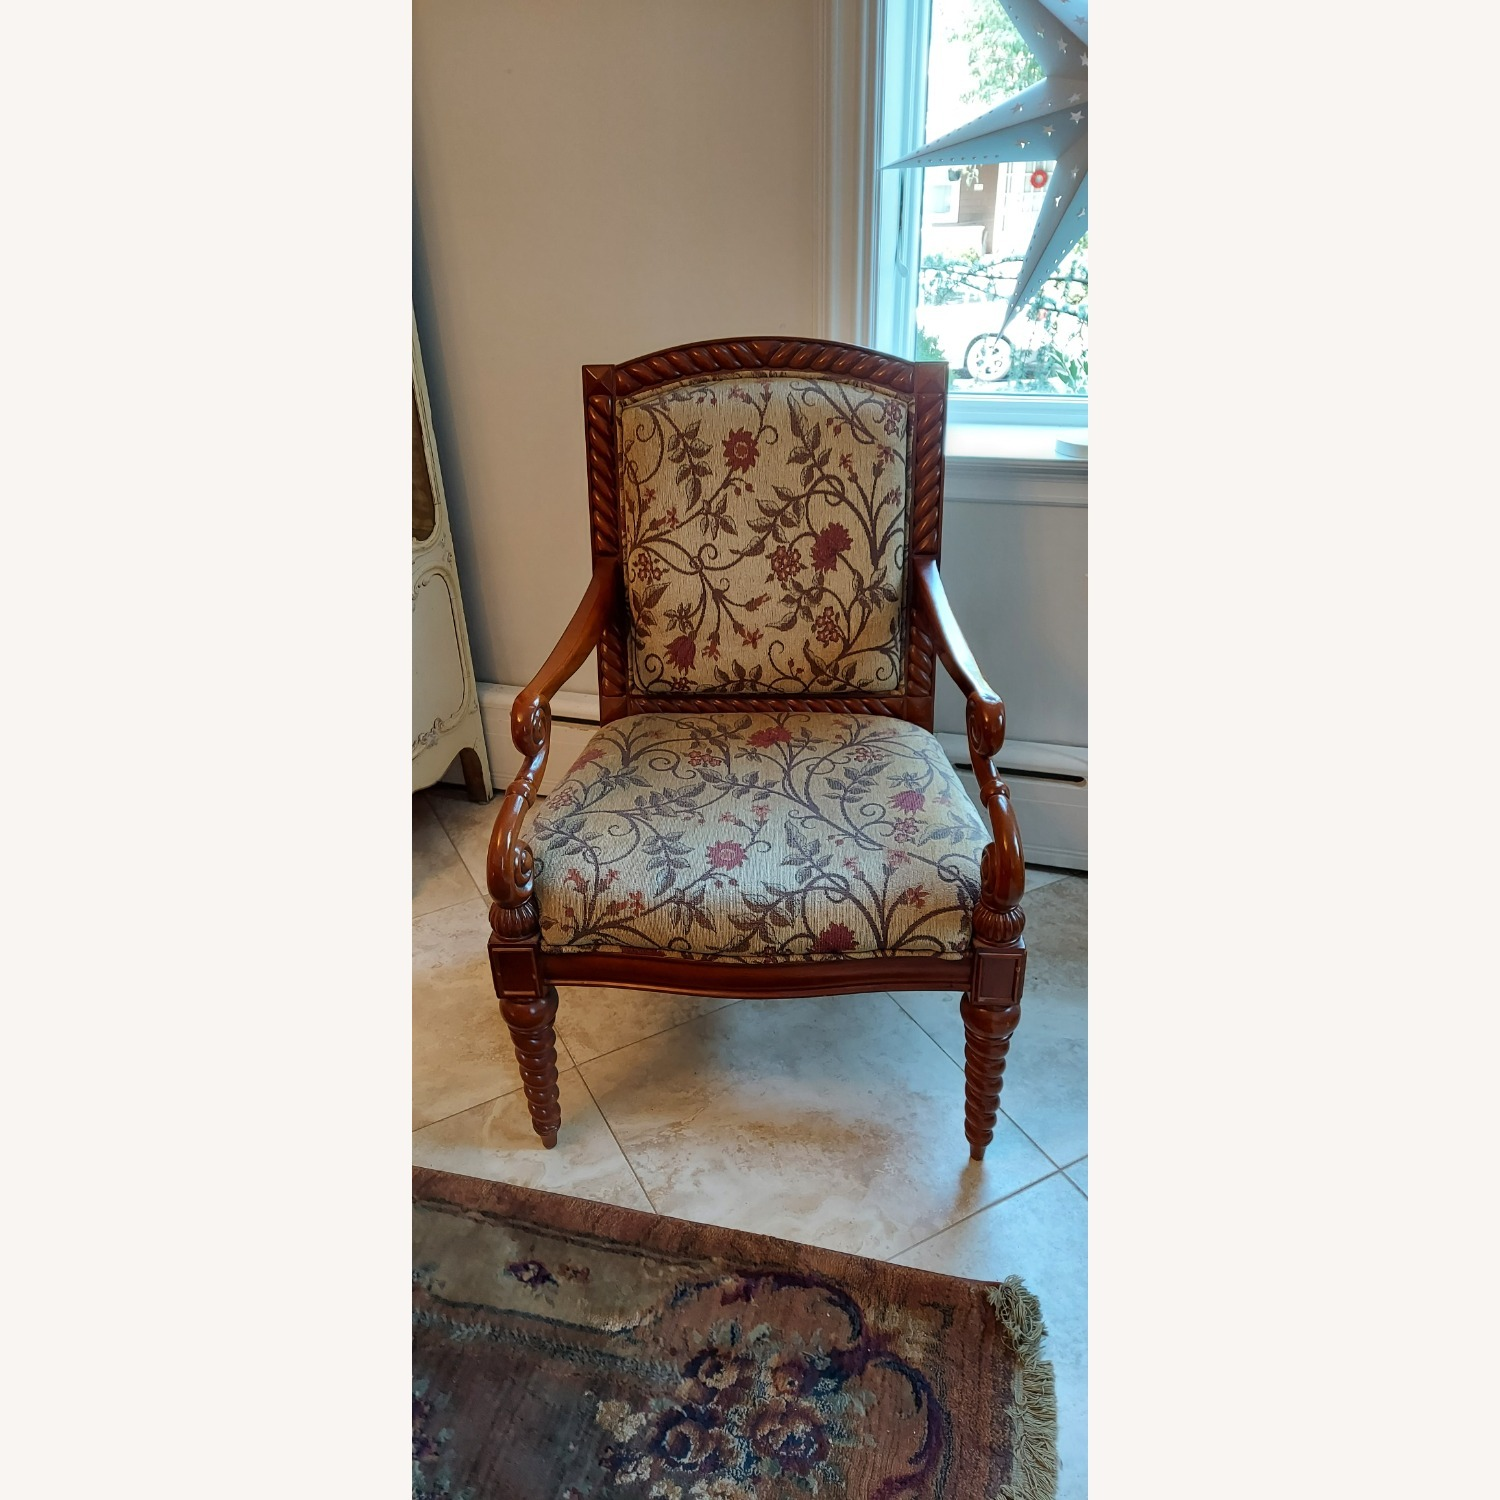 Bombay Company Accent Chair - image-1